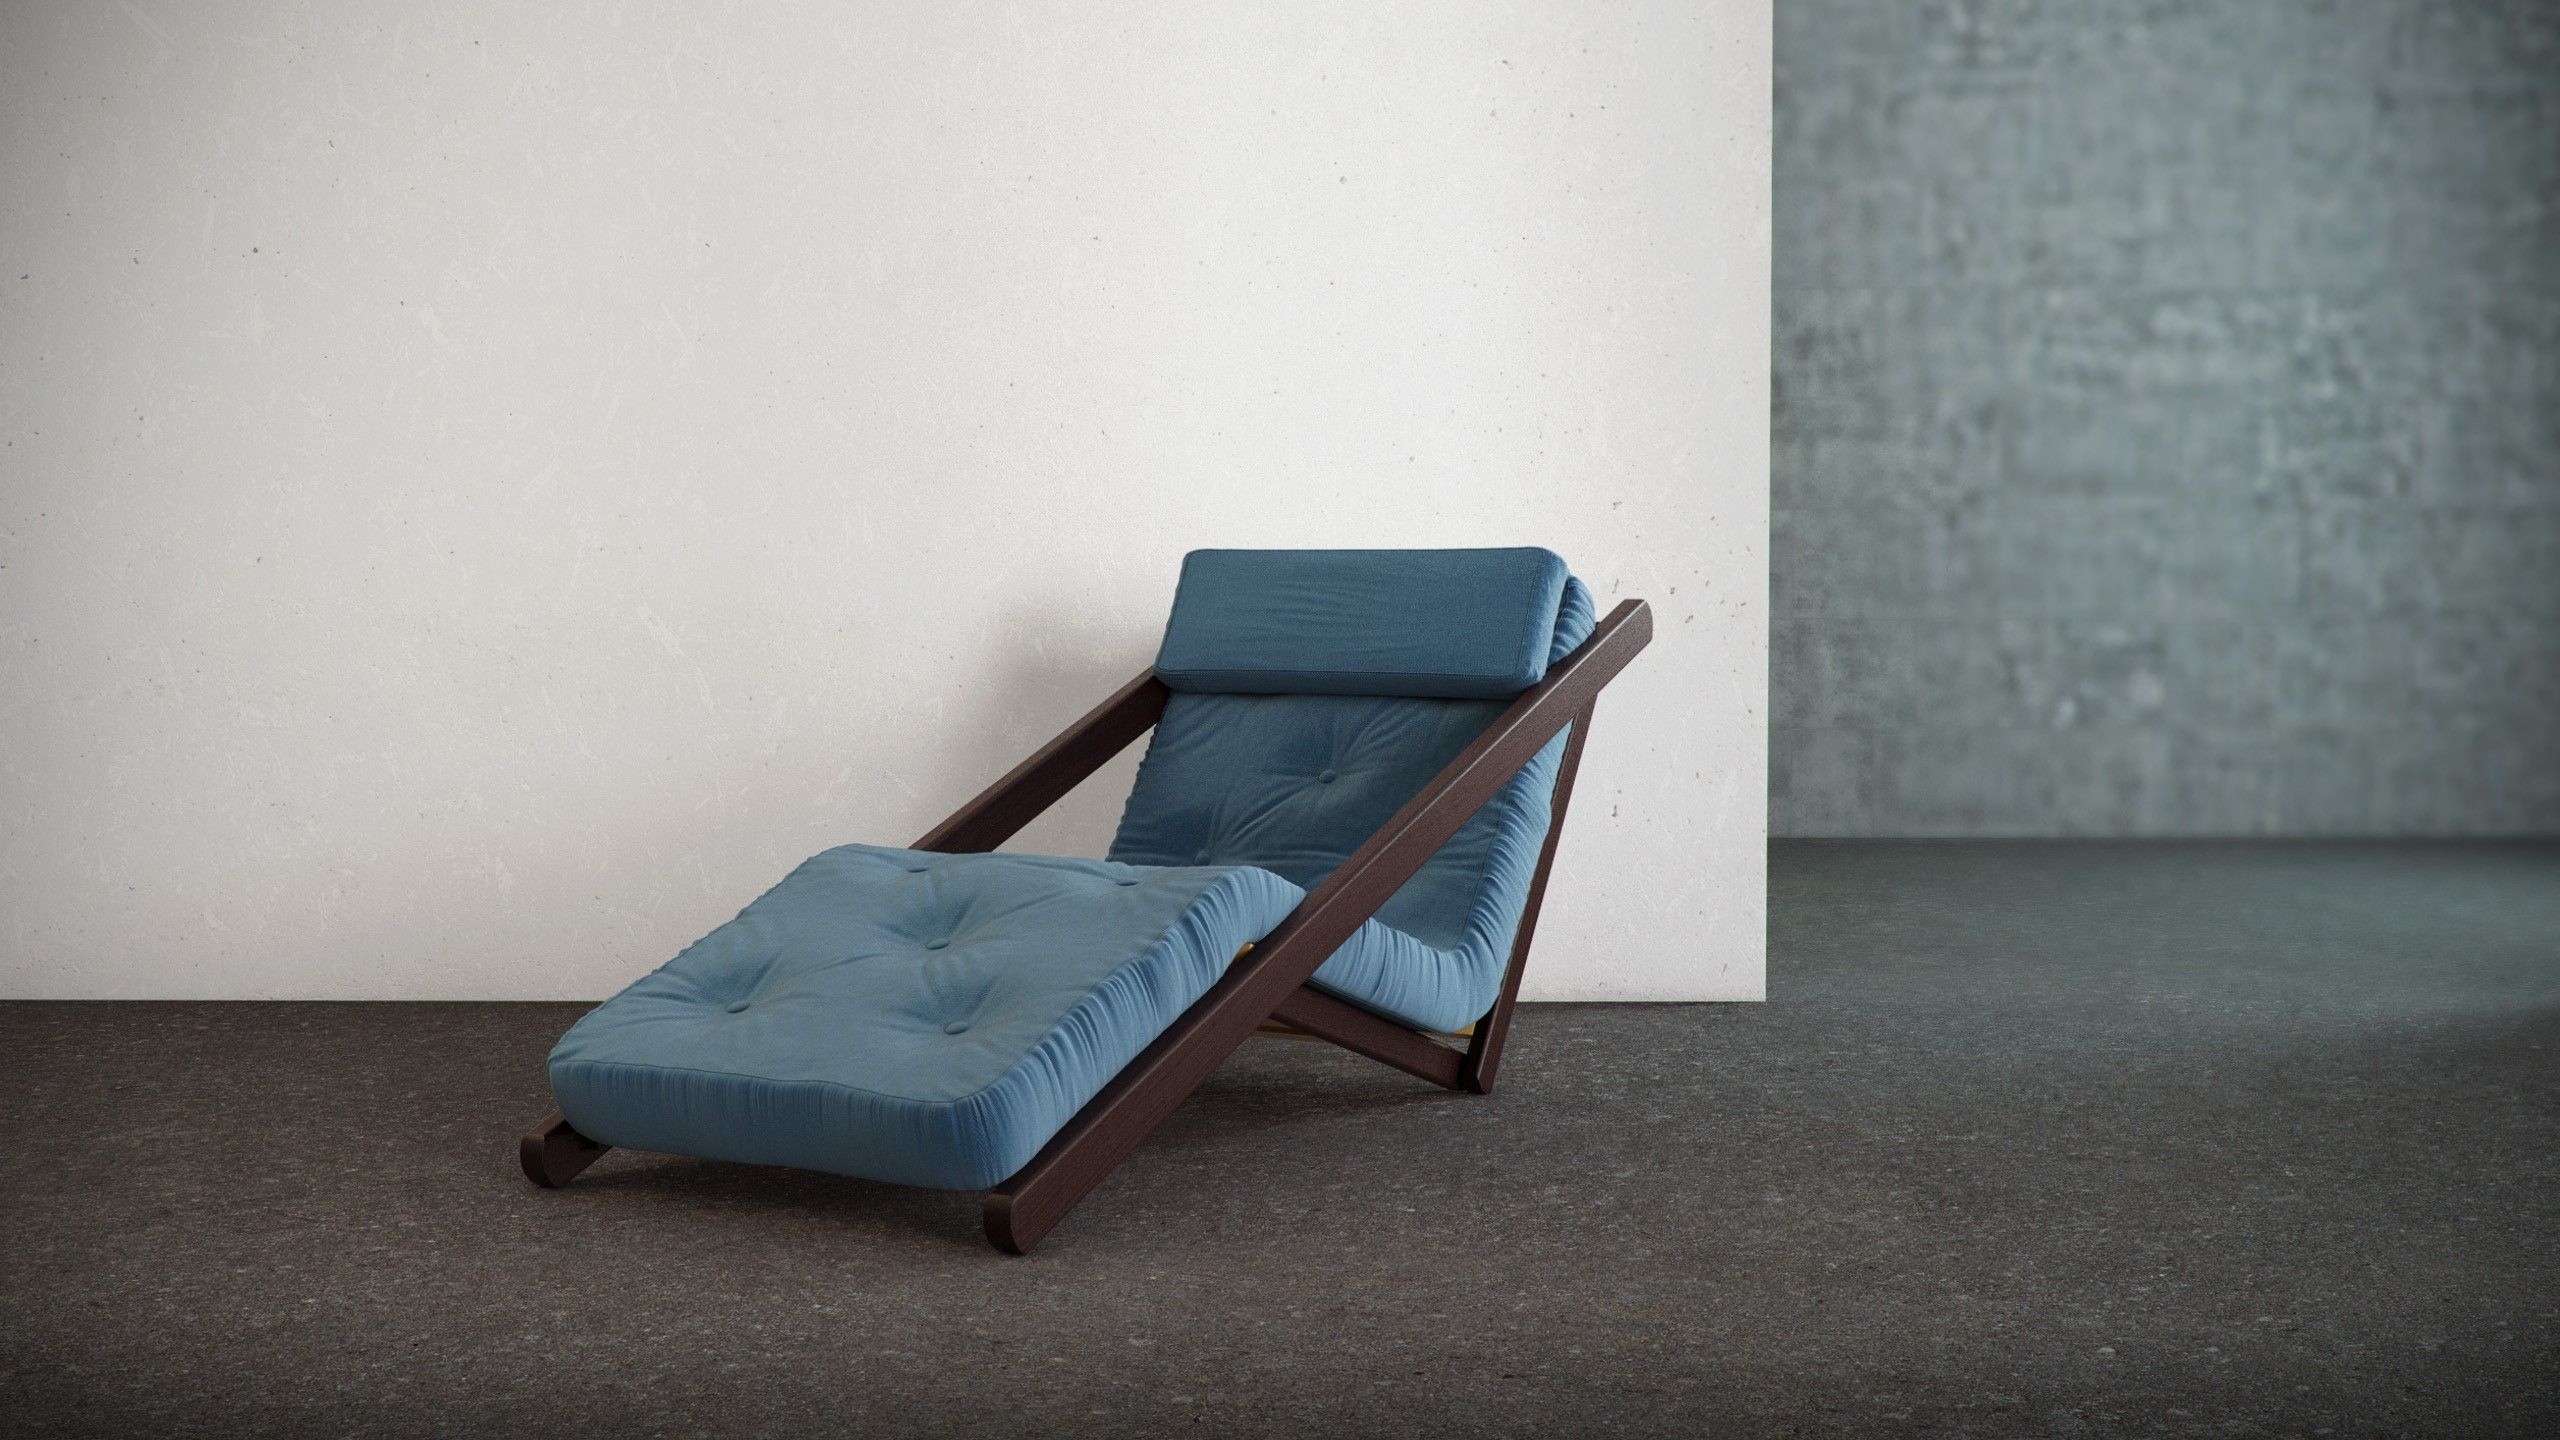 hello everyone this tutorial is all about figo futon lounger by